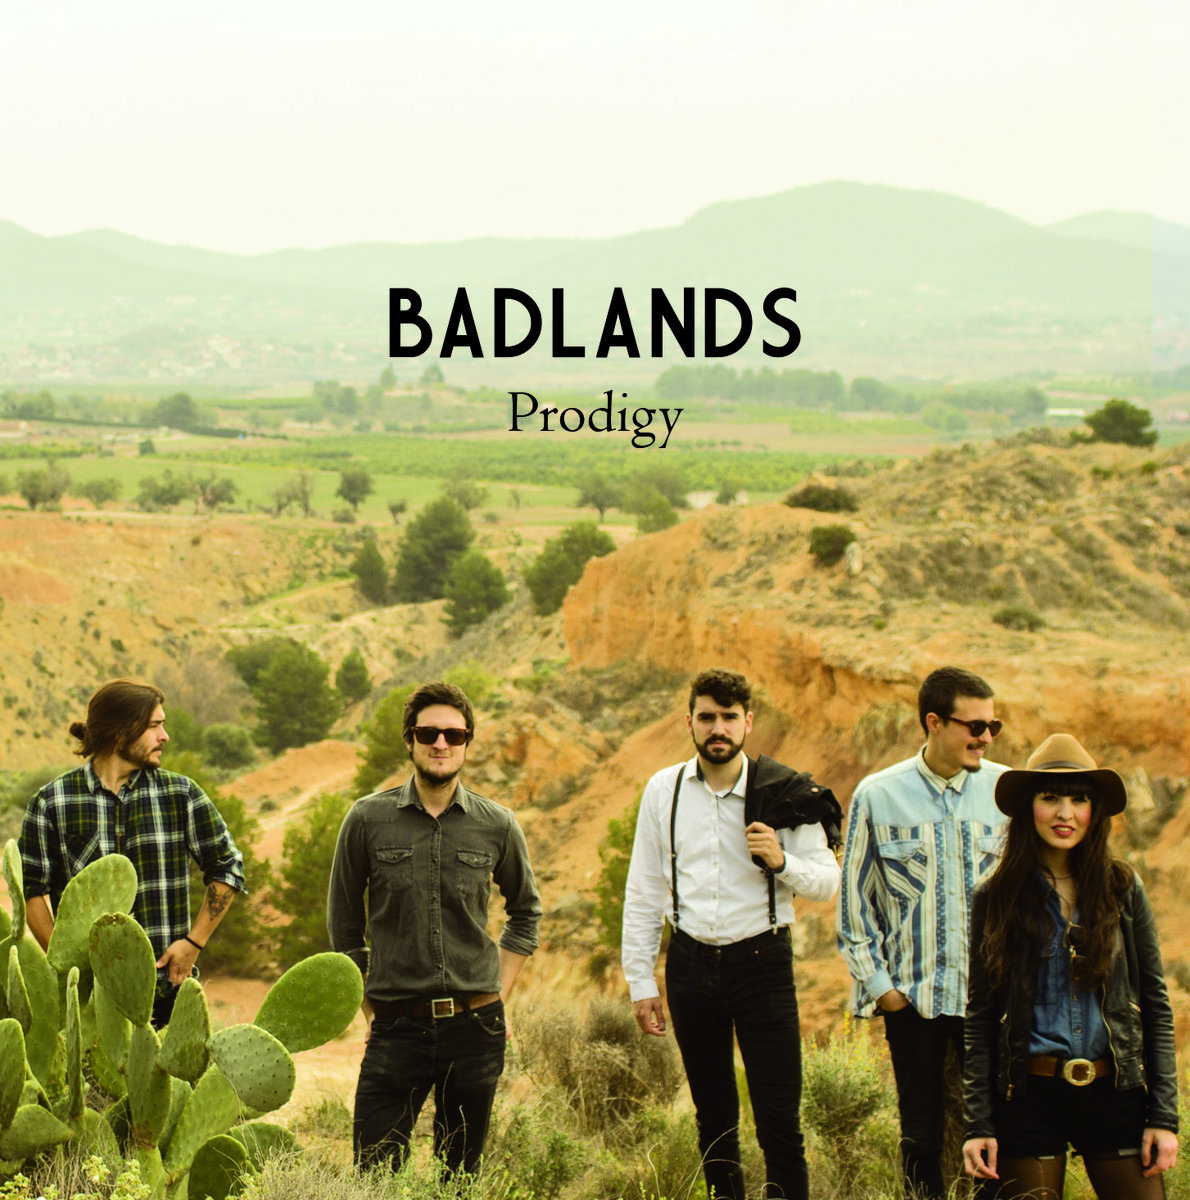 Amazon.com: badlands soundtrack: CDs & Vinyl